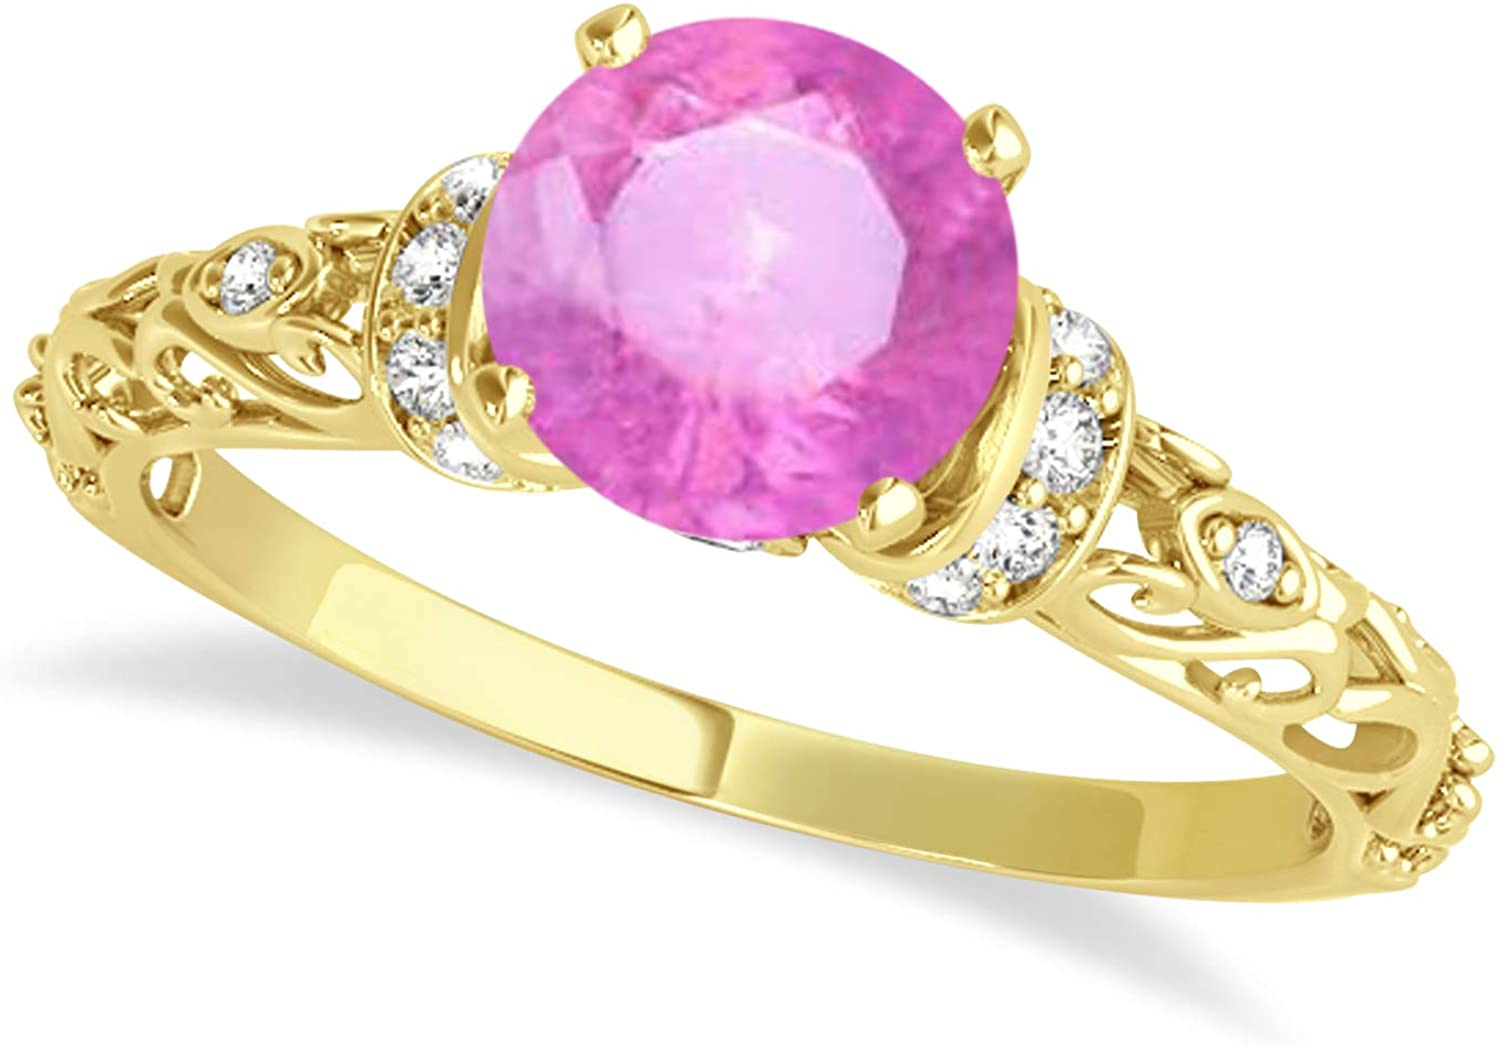 (1.62ct) 14k Yellow Gold Pink Sapphire and Diamond Antique-Style Engagement Ring